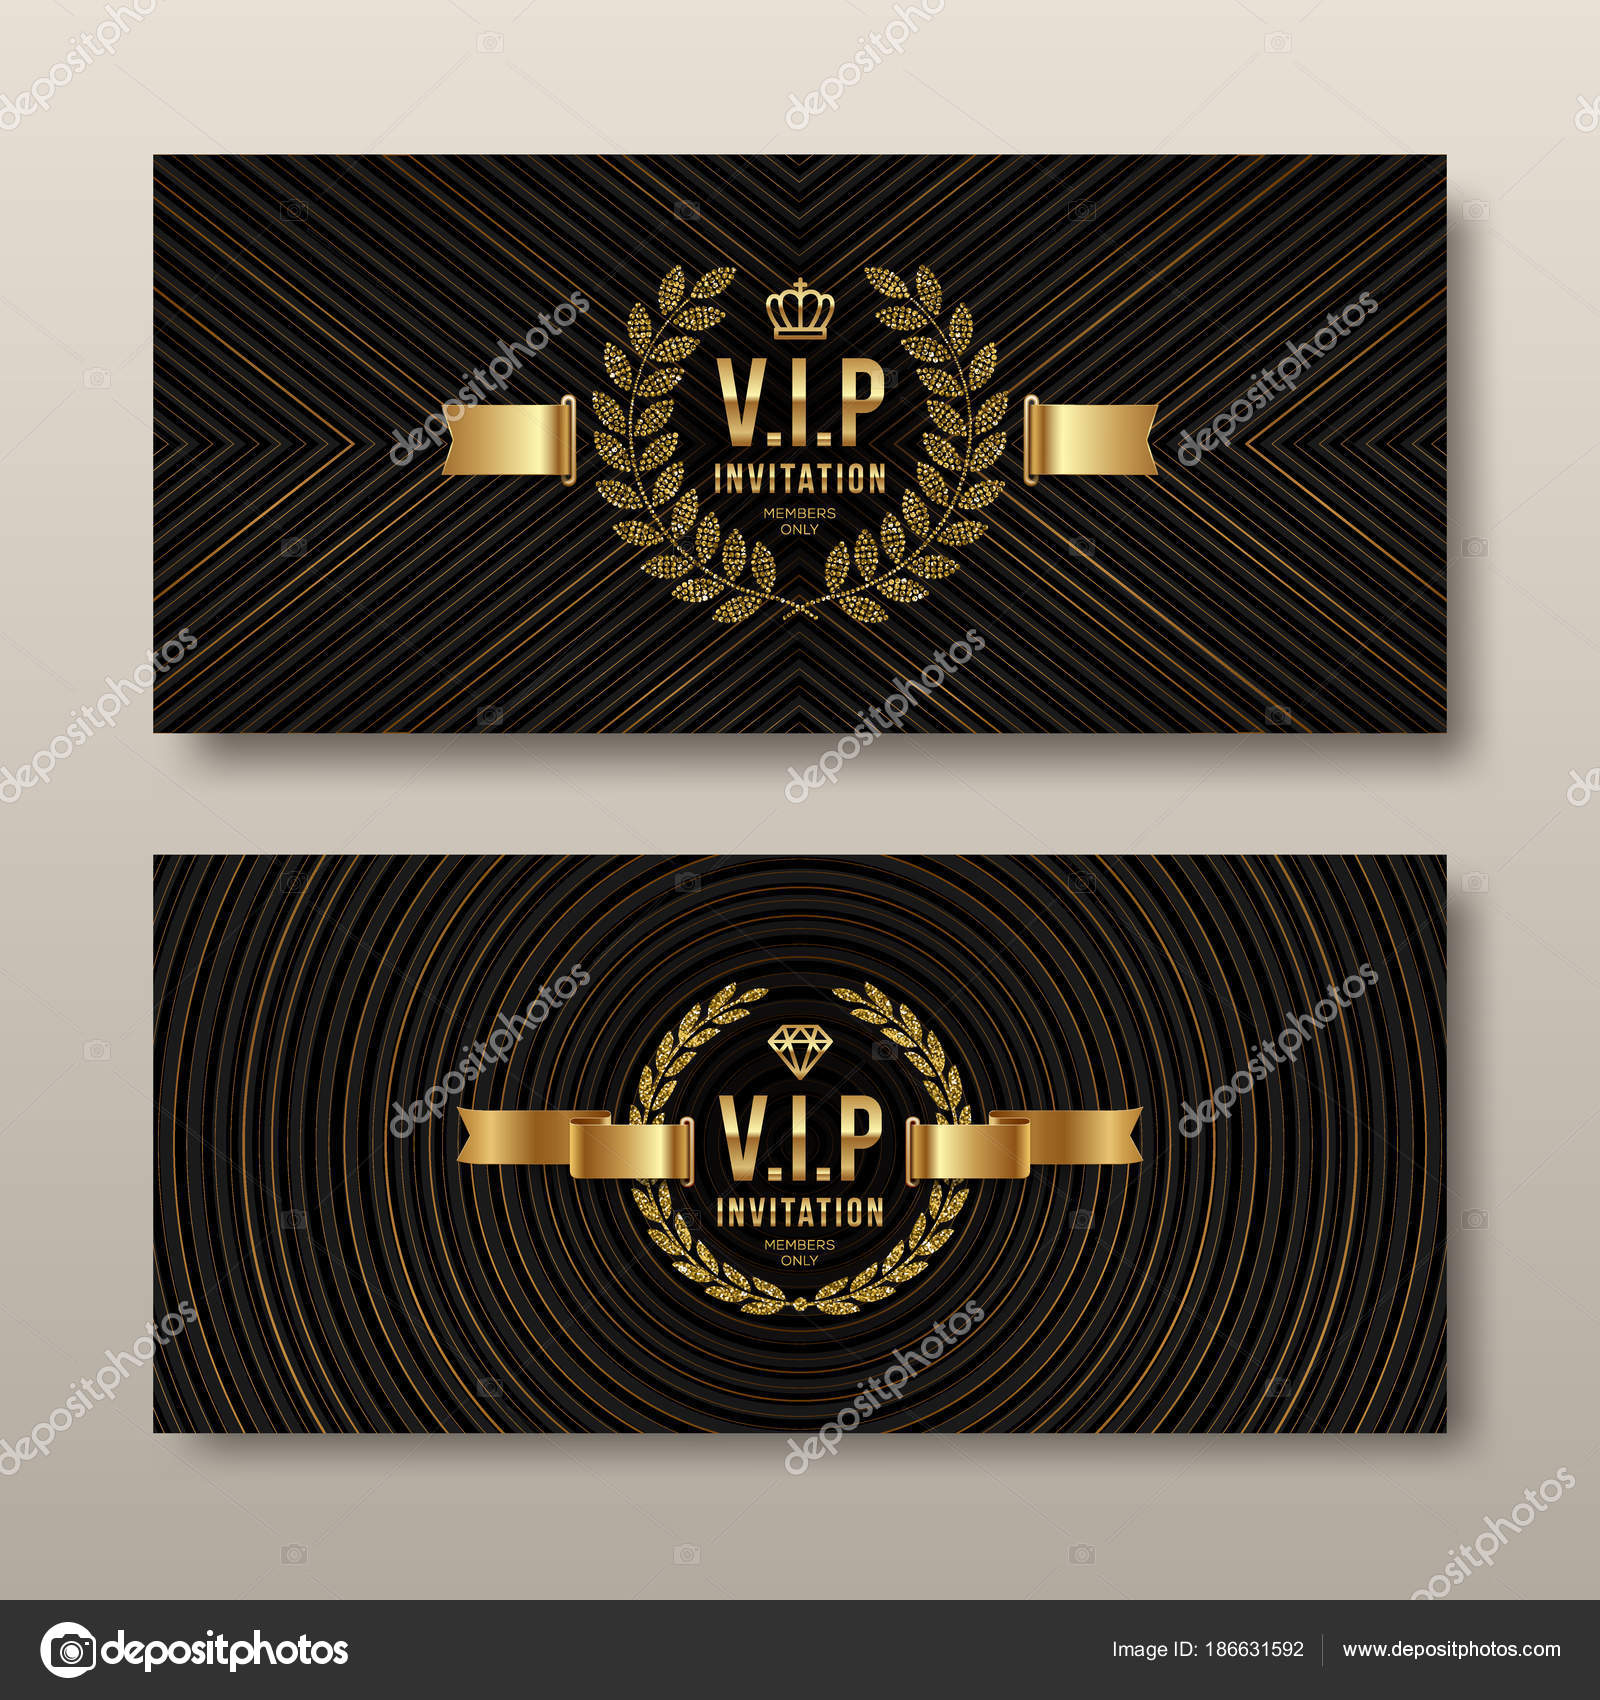 vip golden invitation template type design with crown laurel